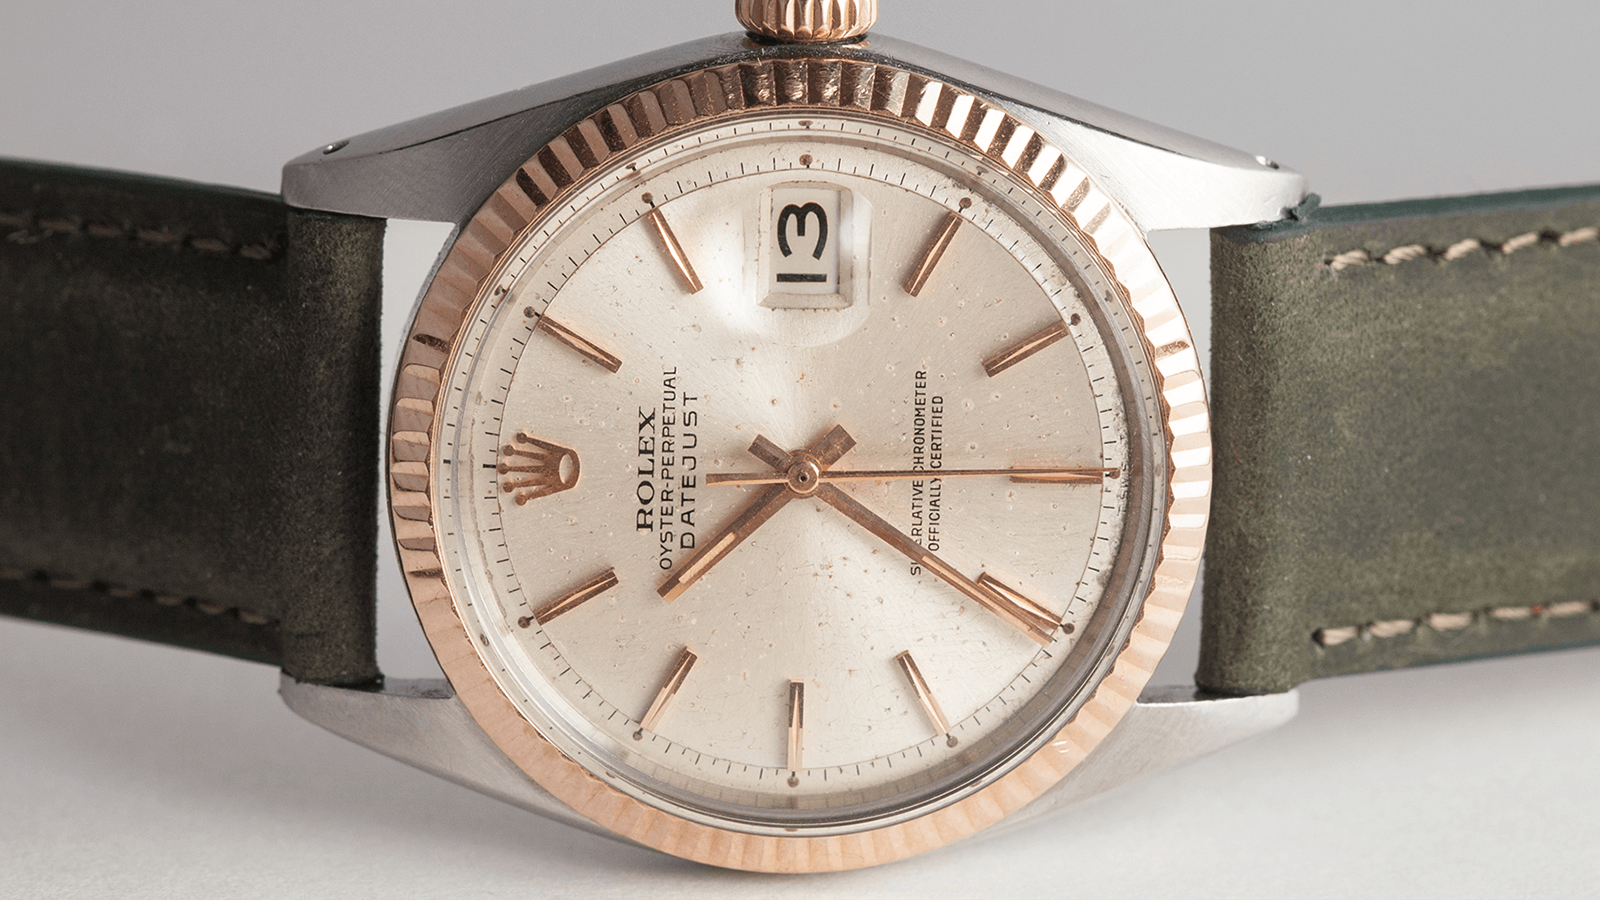 In The Metal: A Pink Gold Two-Tone Datejust, Vacheron Constantin & More